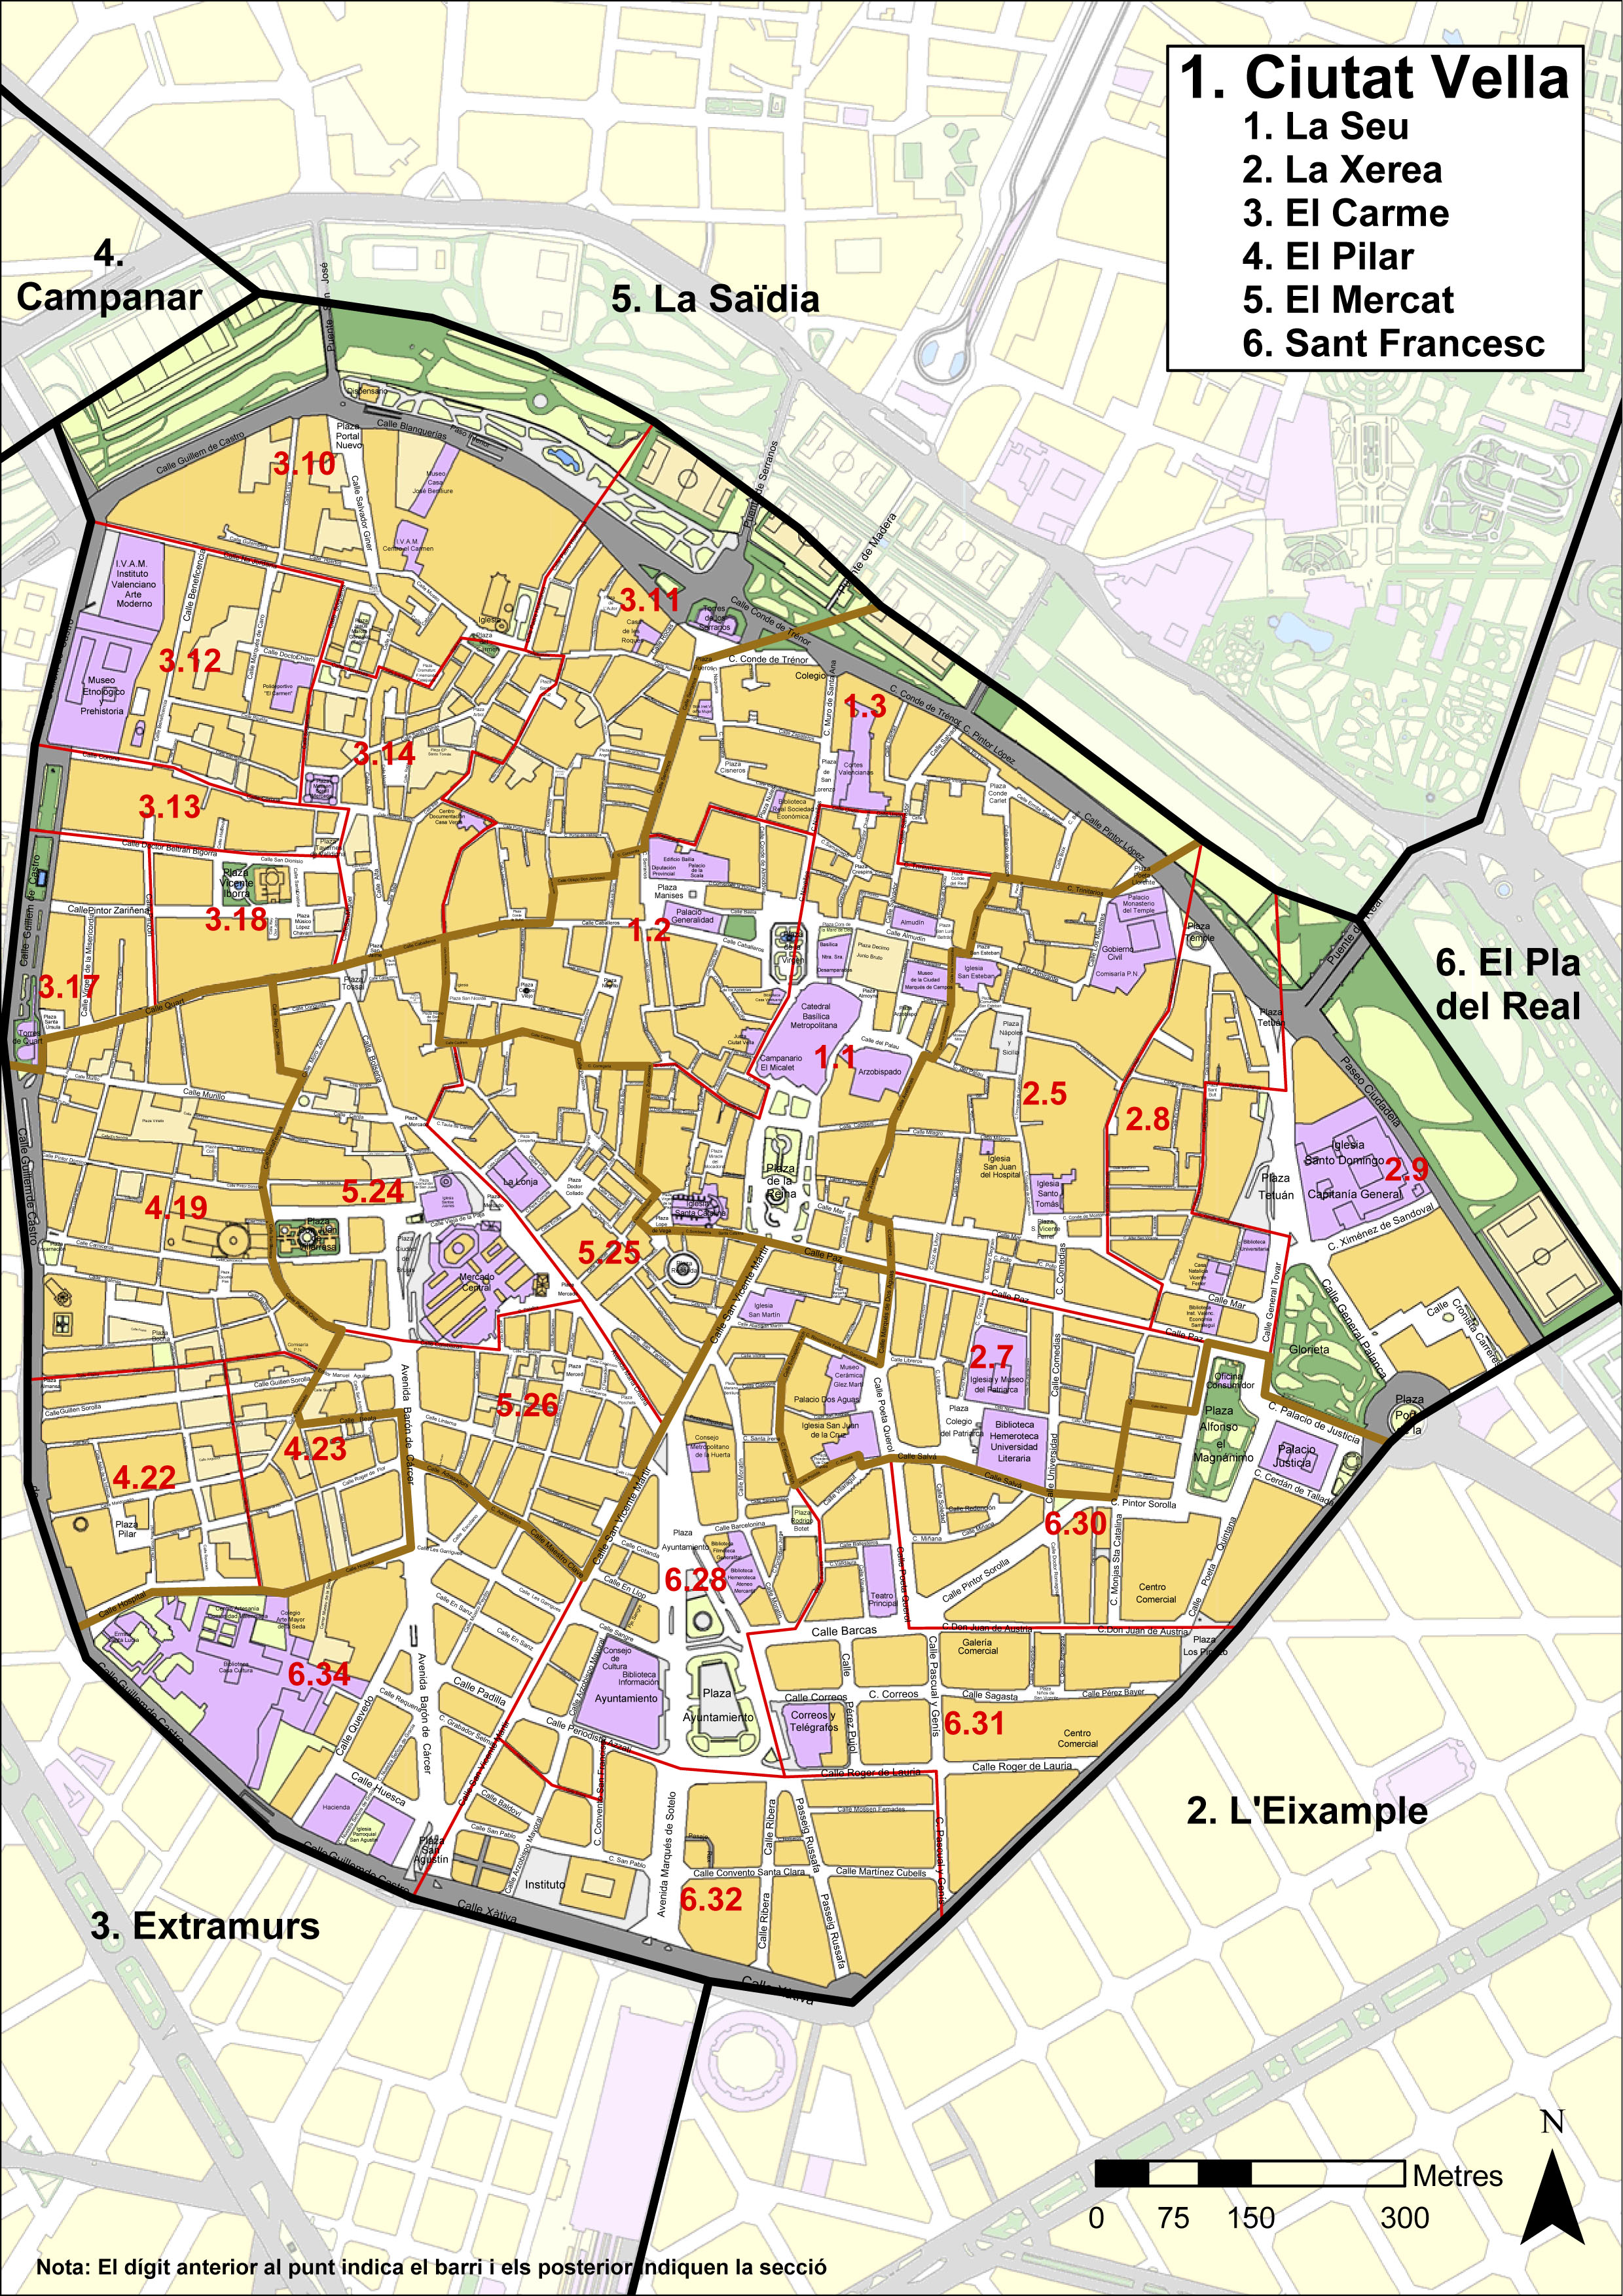 Ciutat Vella district, Valencia